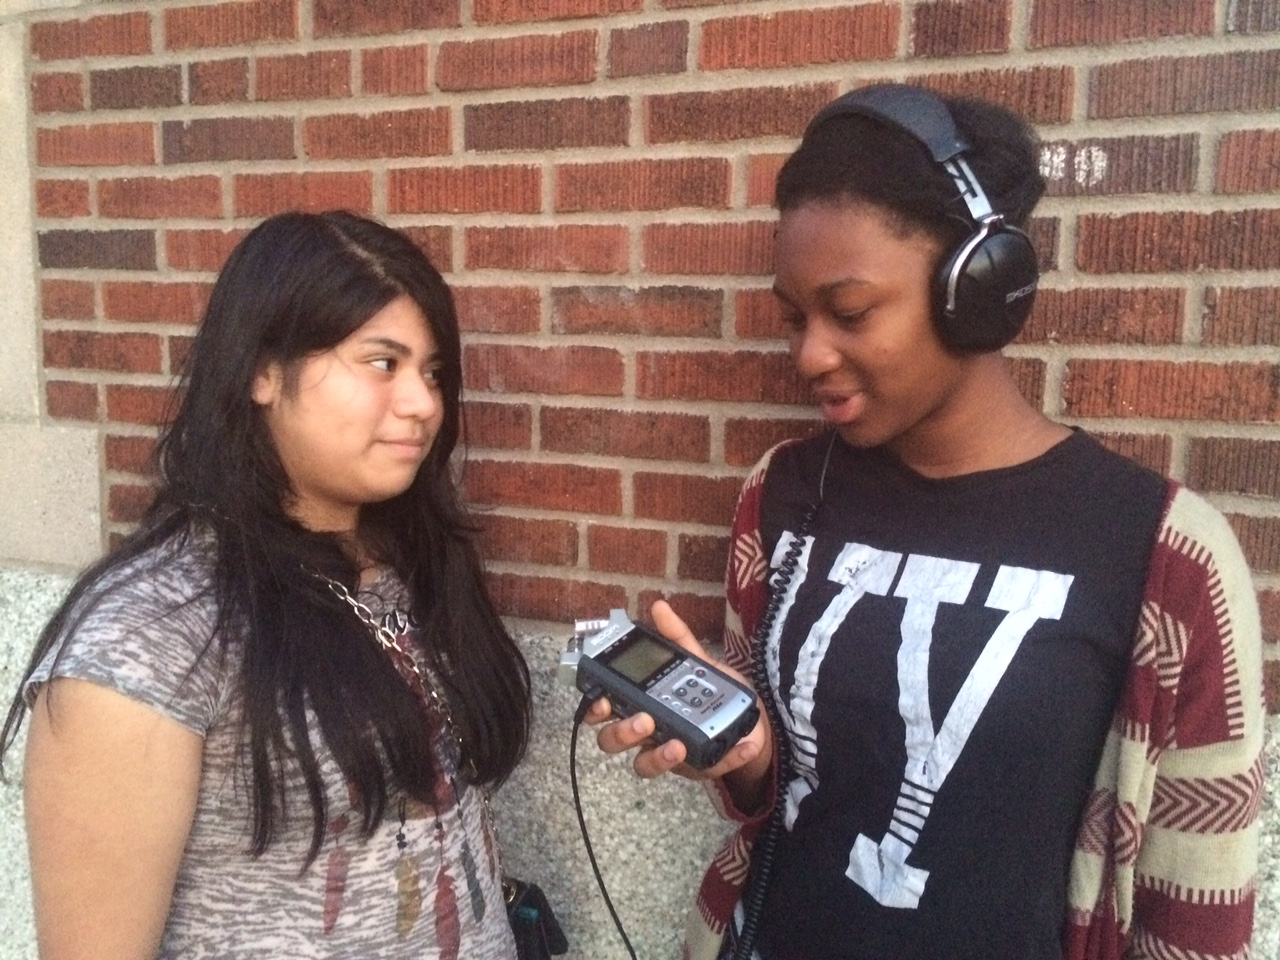 Caption: Leslie being interviewed by Tyesha